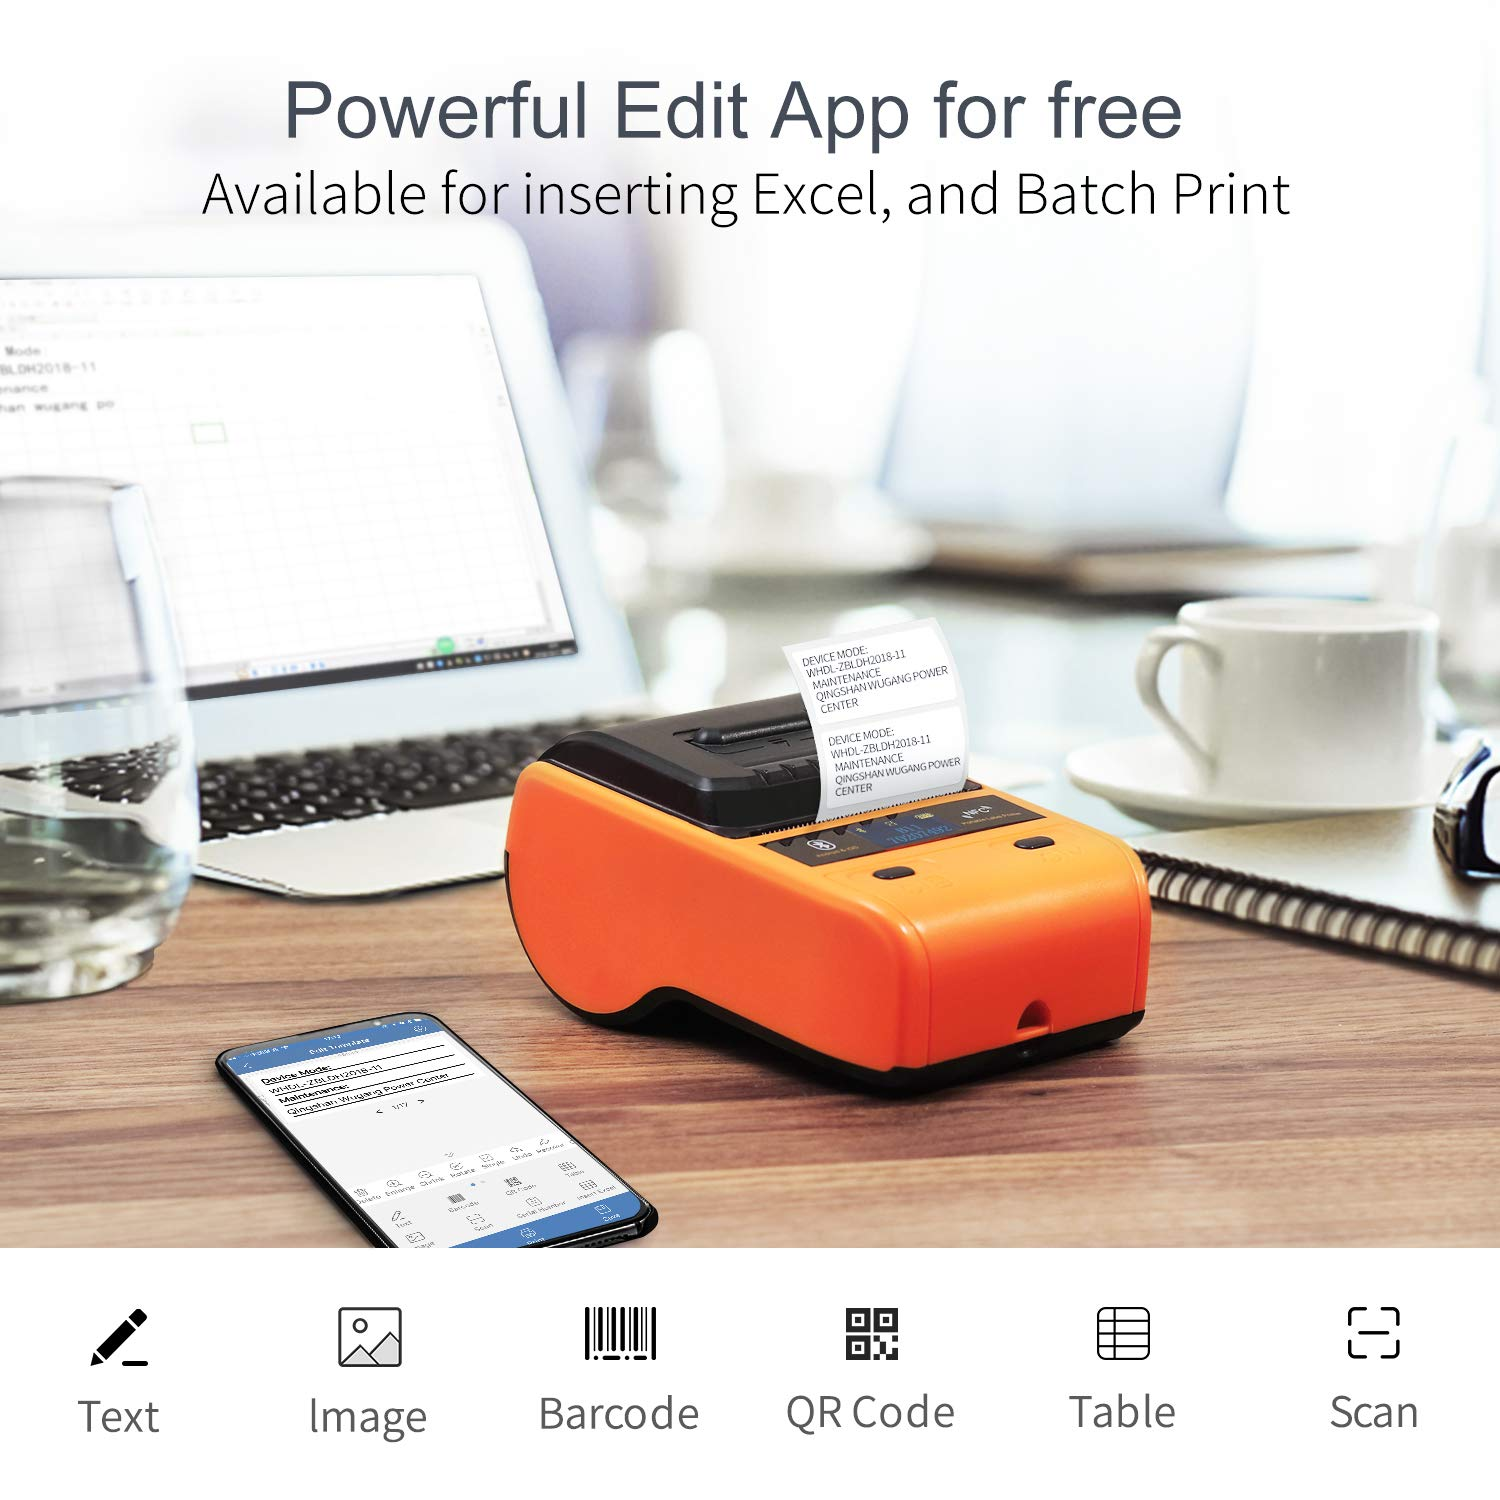 JINGCHEN B11 Bluetooth Portable Thermal Label Printer, Orange, Android & iOS, Wireless, Power & Communication, Computer-Room, Figures/Text/Images/barcodes, 1 roll for free (0.98x 1.50x1.57 in) 100 pcs by JINGCHEN (Image #6)